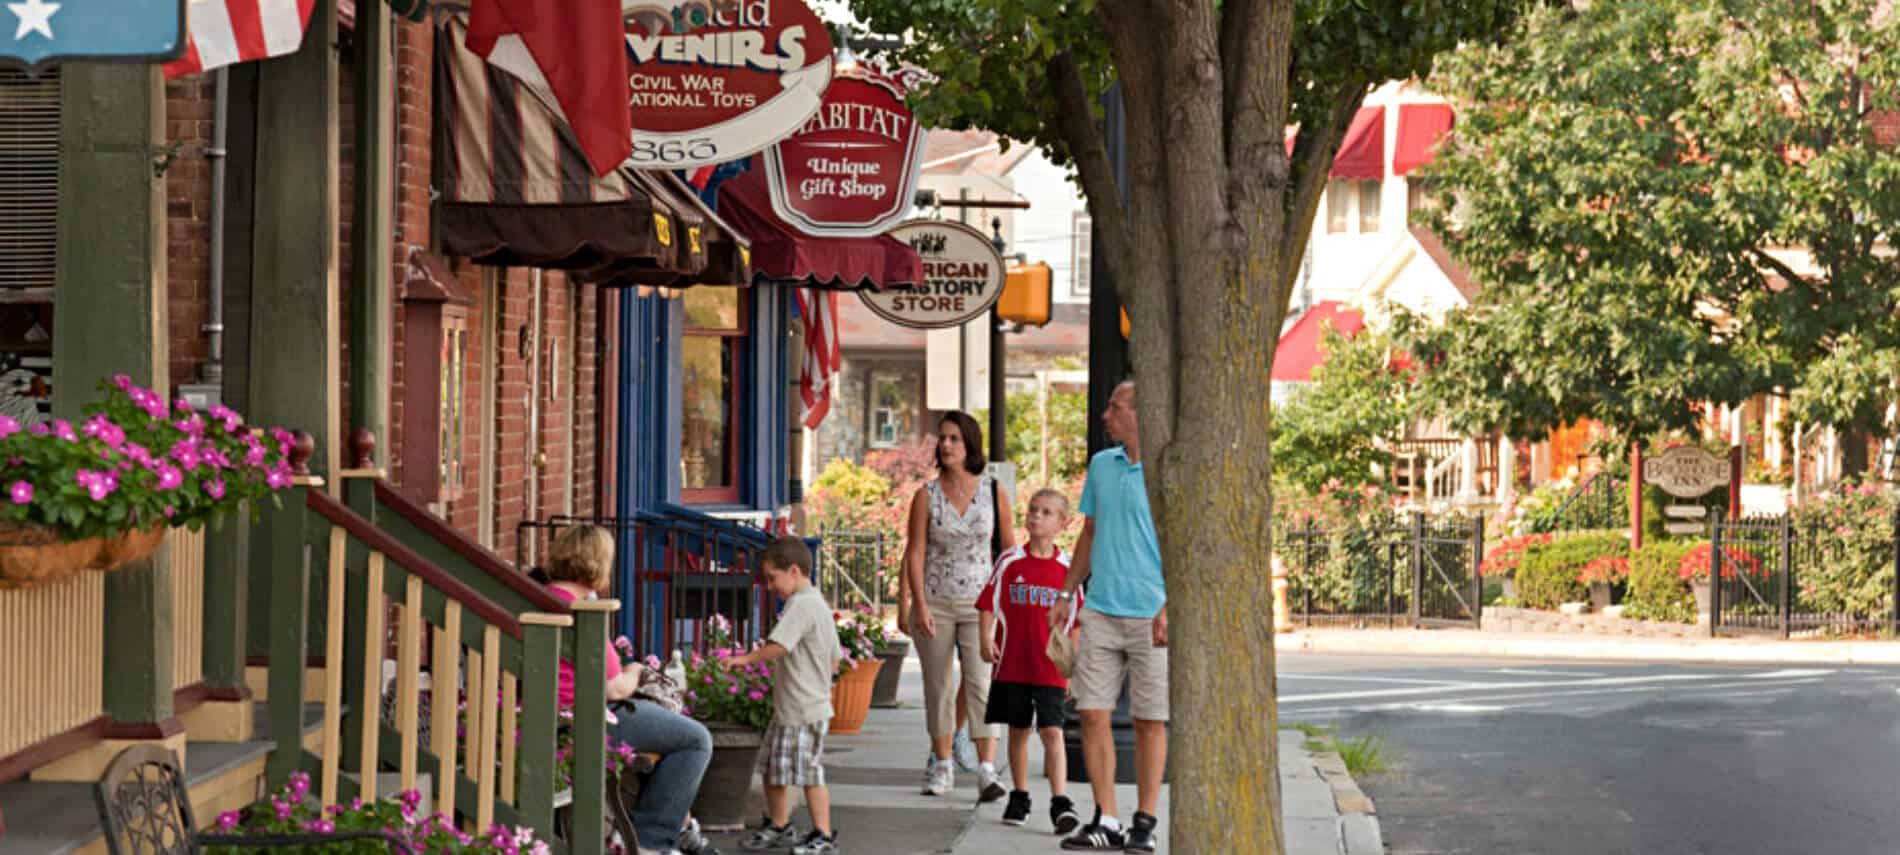 Downtown Gettysburg street lined with shops selling souvenirs, gifts, history, and more